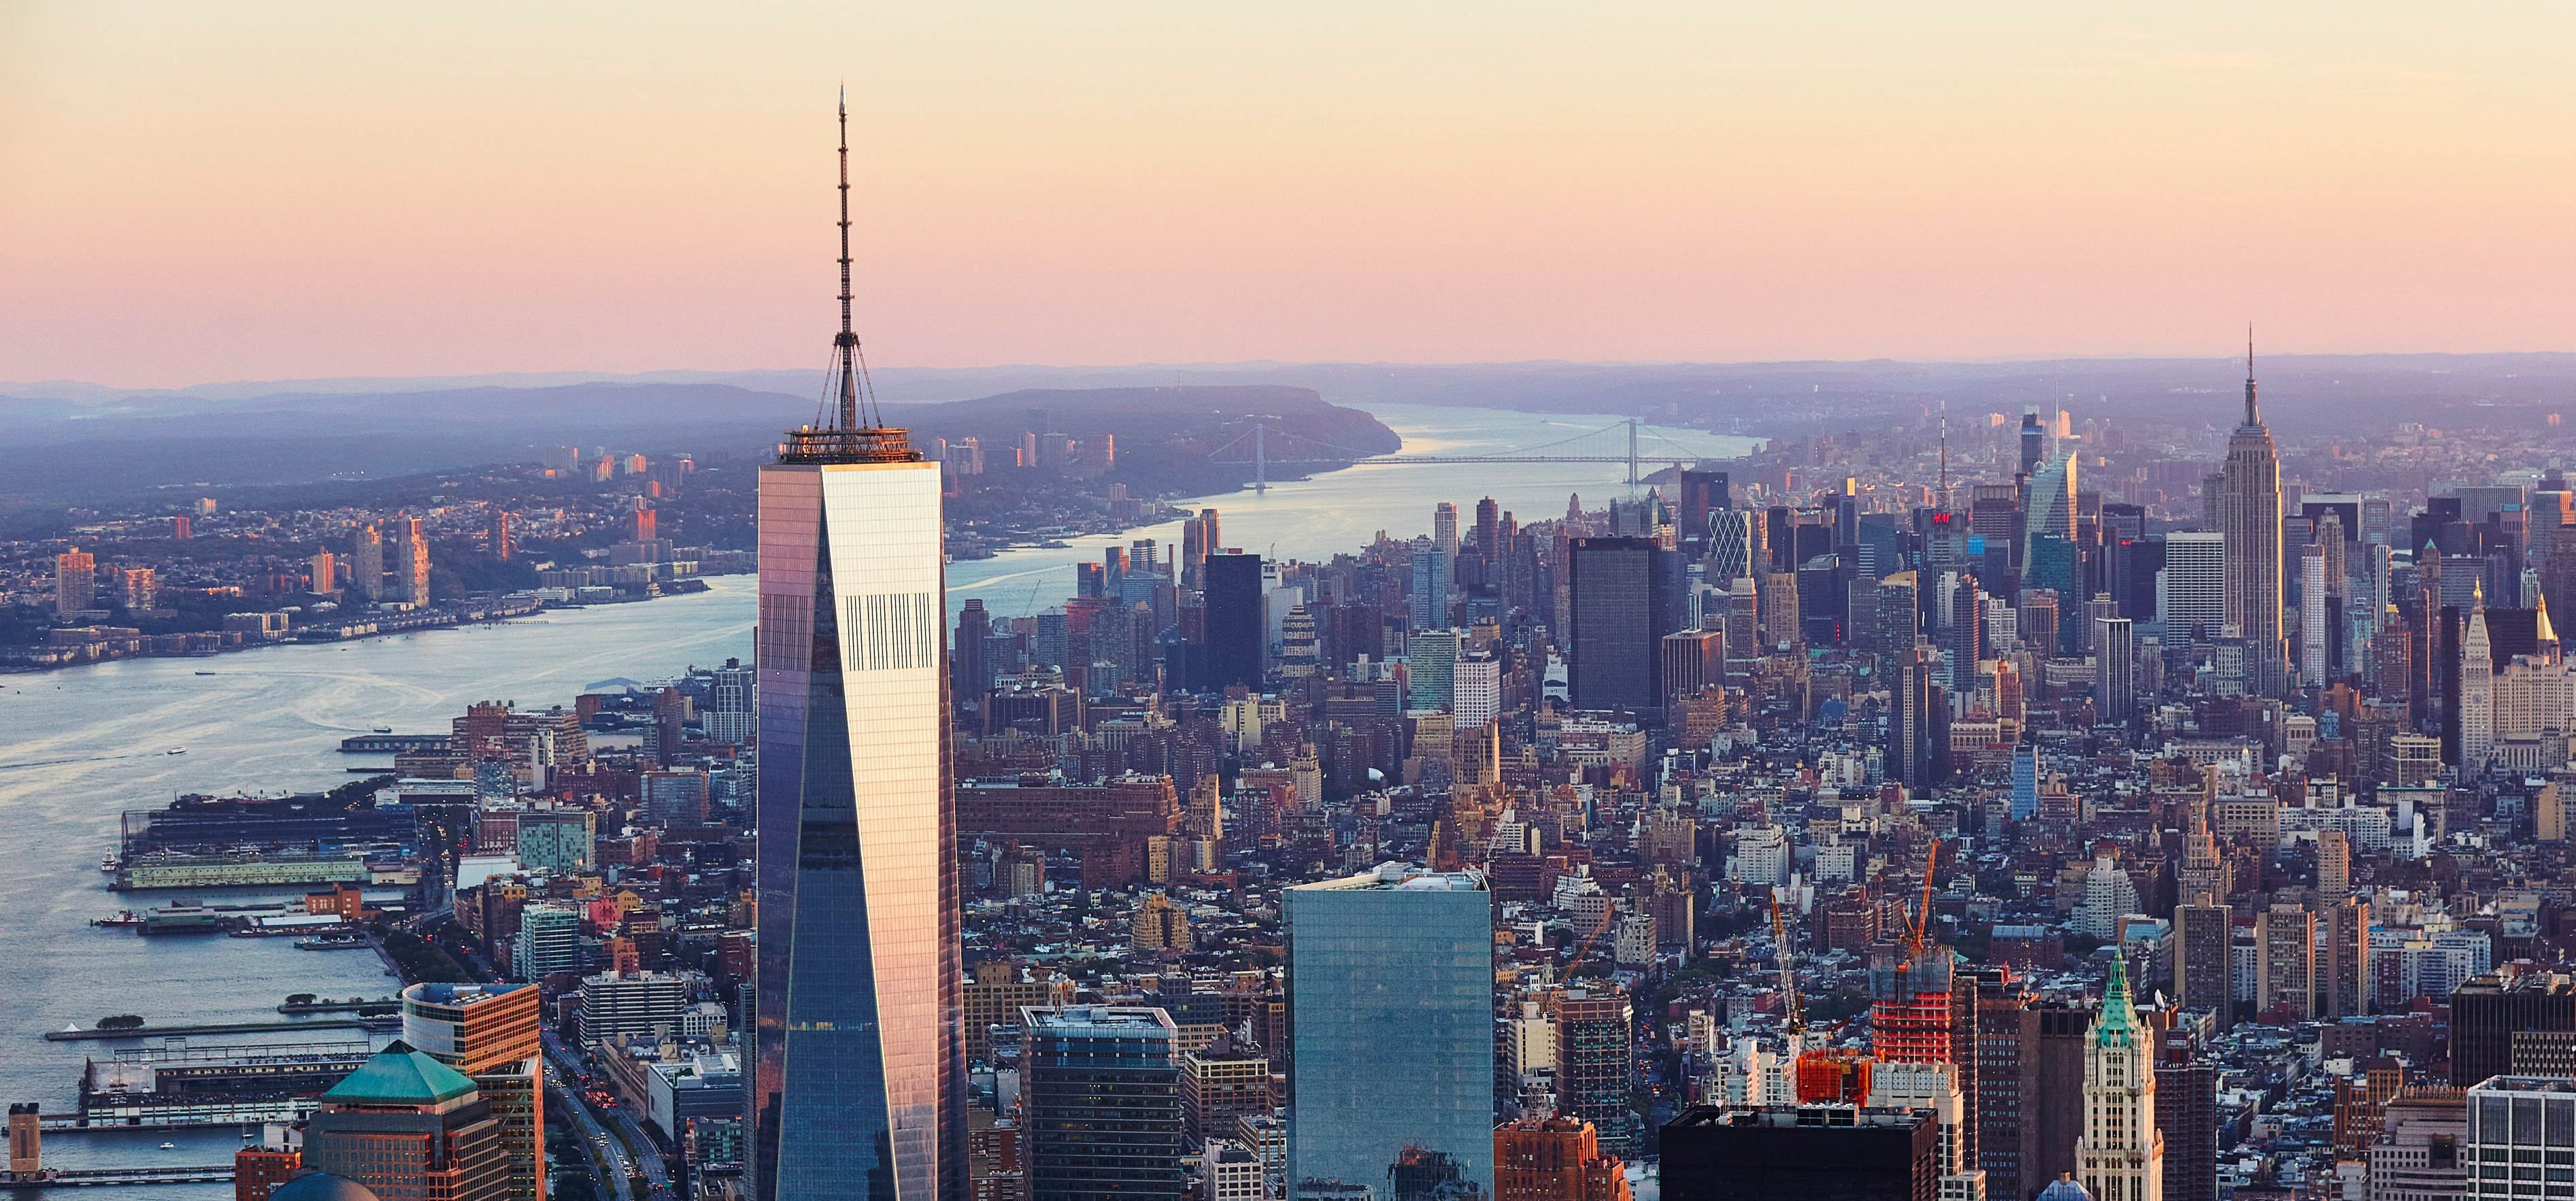 nyc_owtc_aerialmidtown1111.jpg